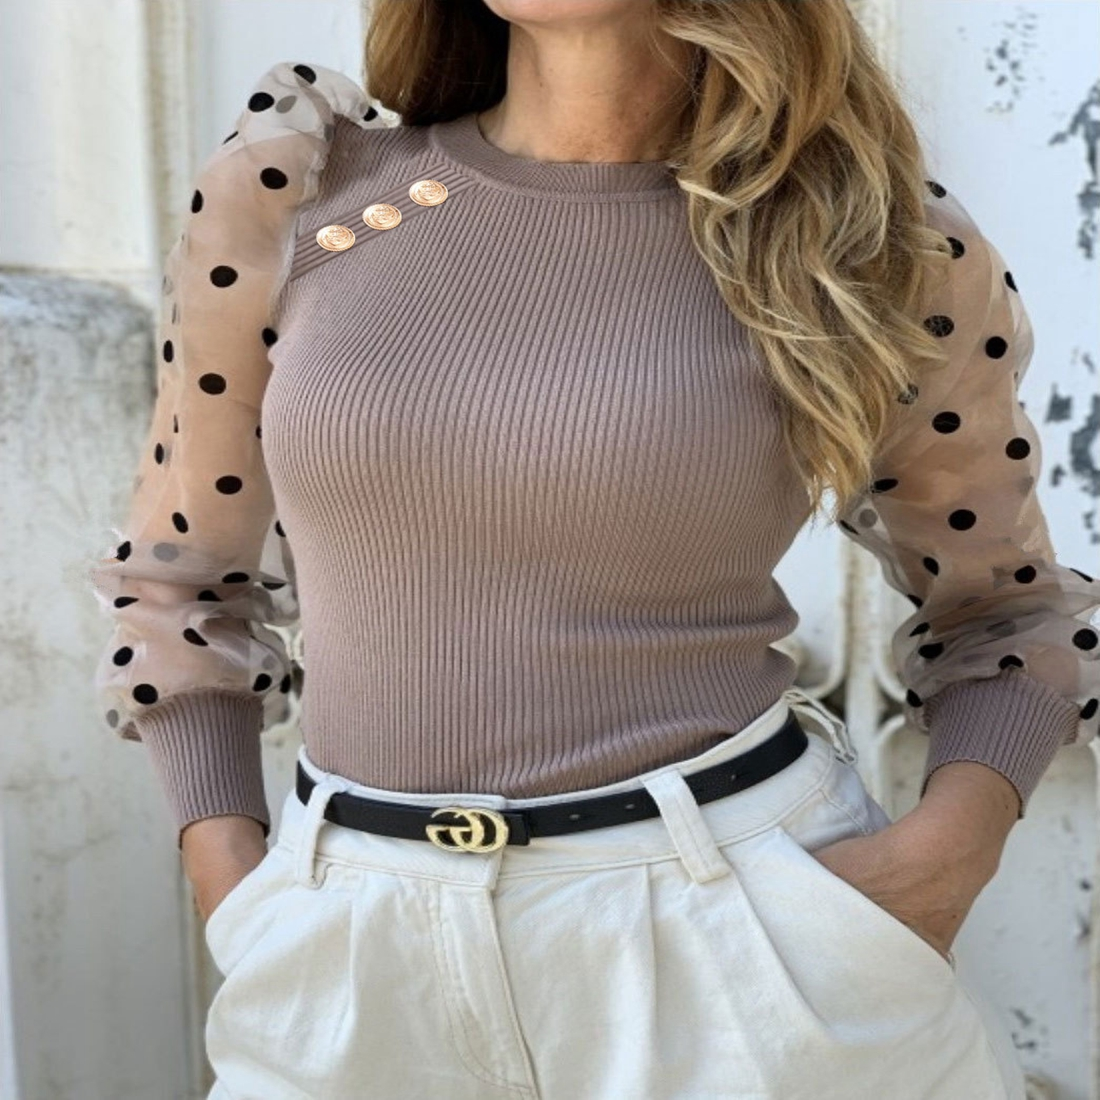 Casual Dot Print Mesh Puff Sleeve Transparent Knitted Sweater Pullover Winter Women Turtleneck Button Sweater Female Clothing